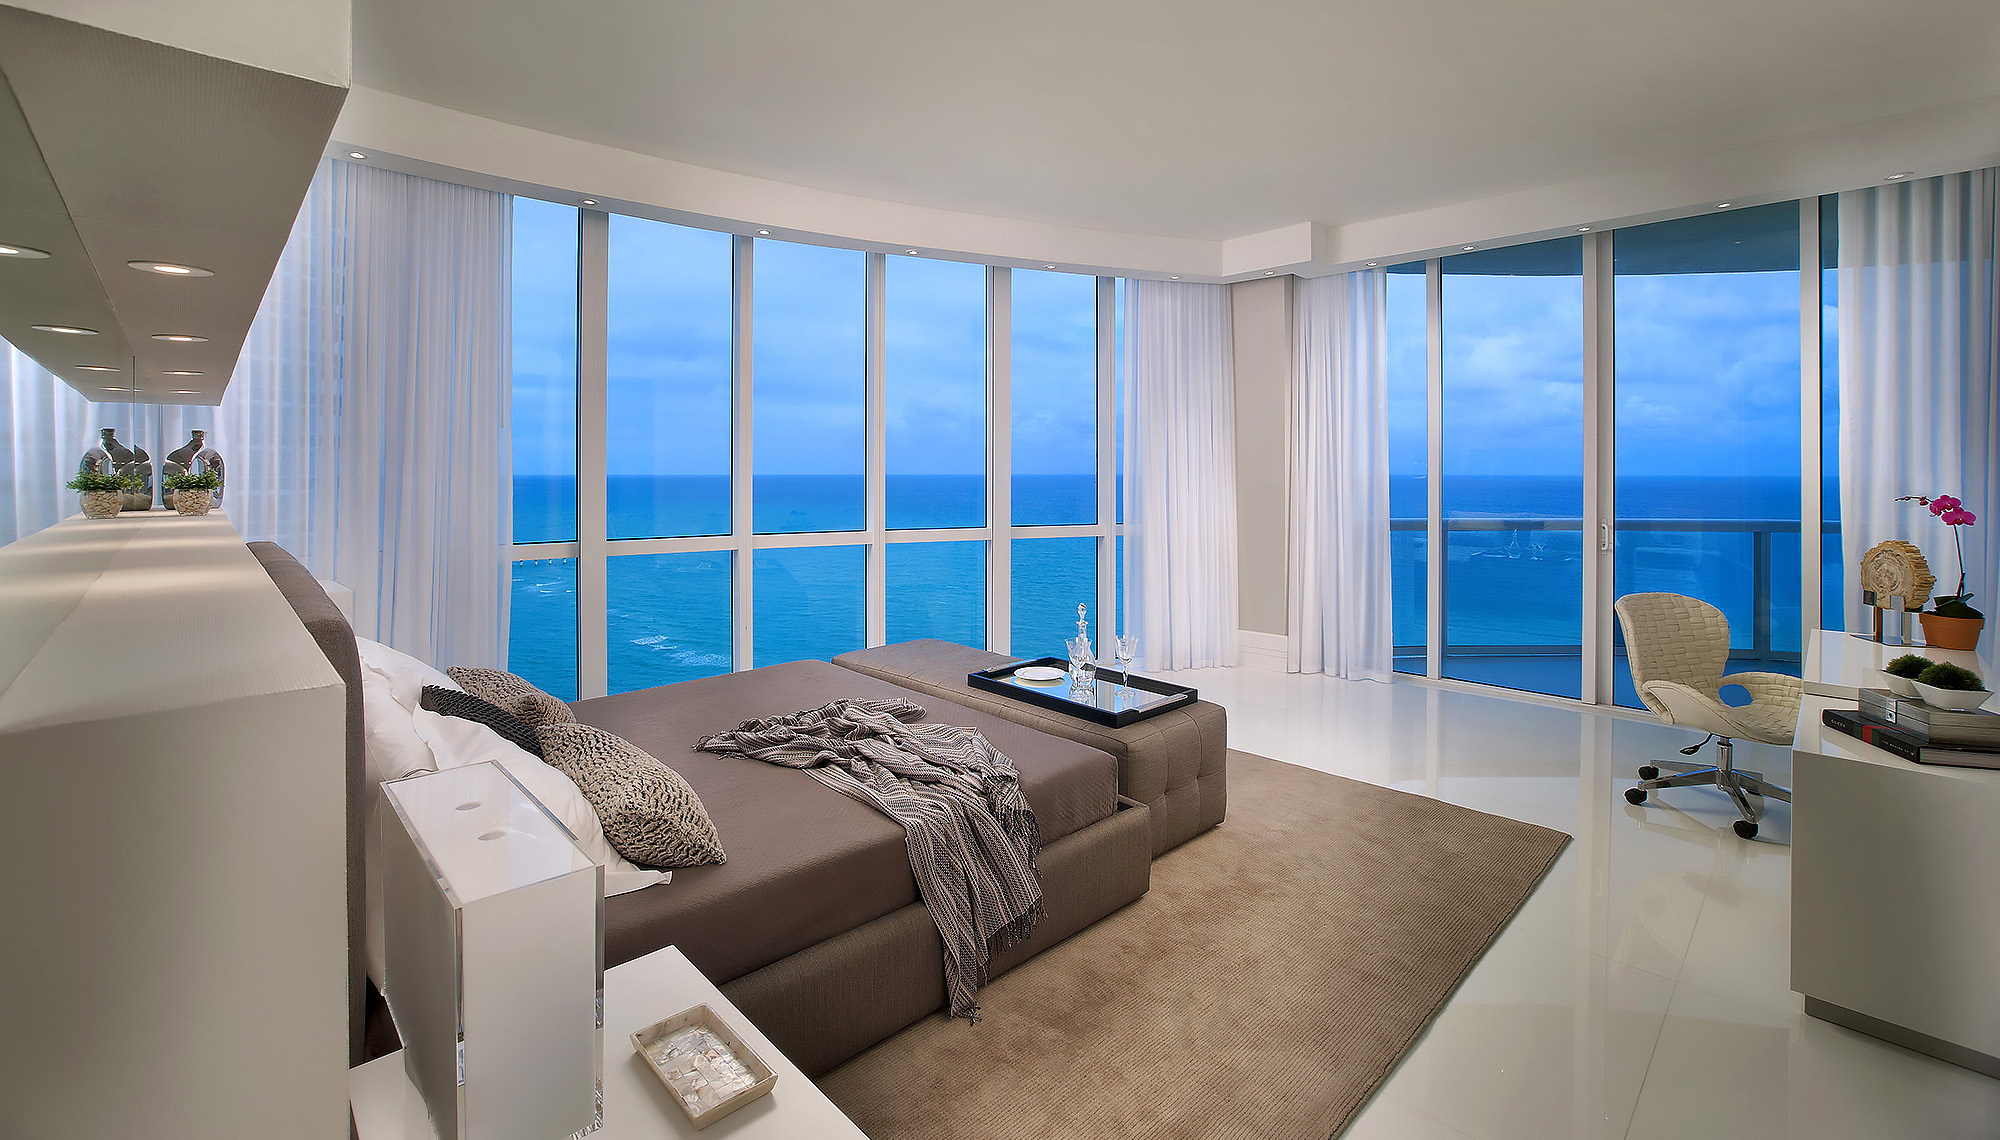 Luxury-Real-Estate-Photography-Bedroom-Ocean-View-1